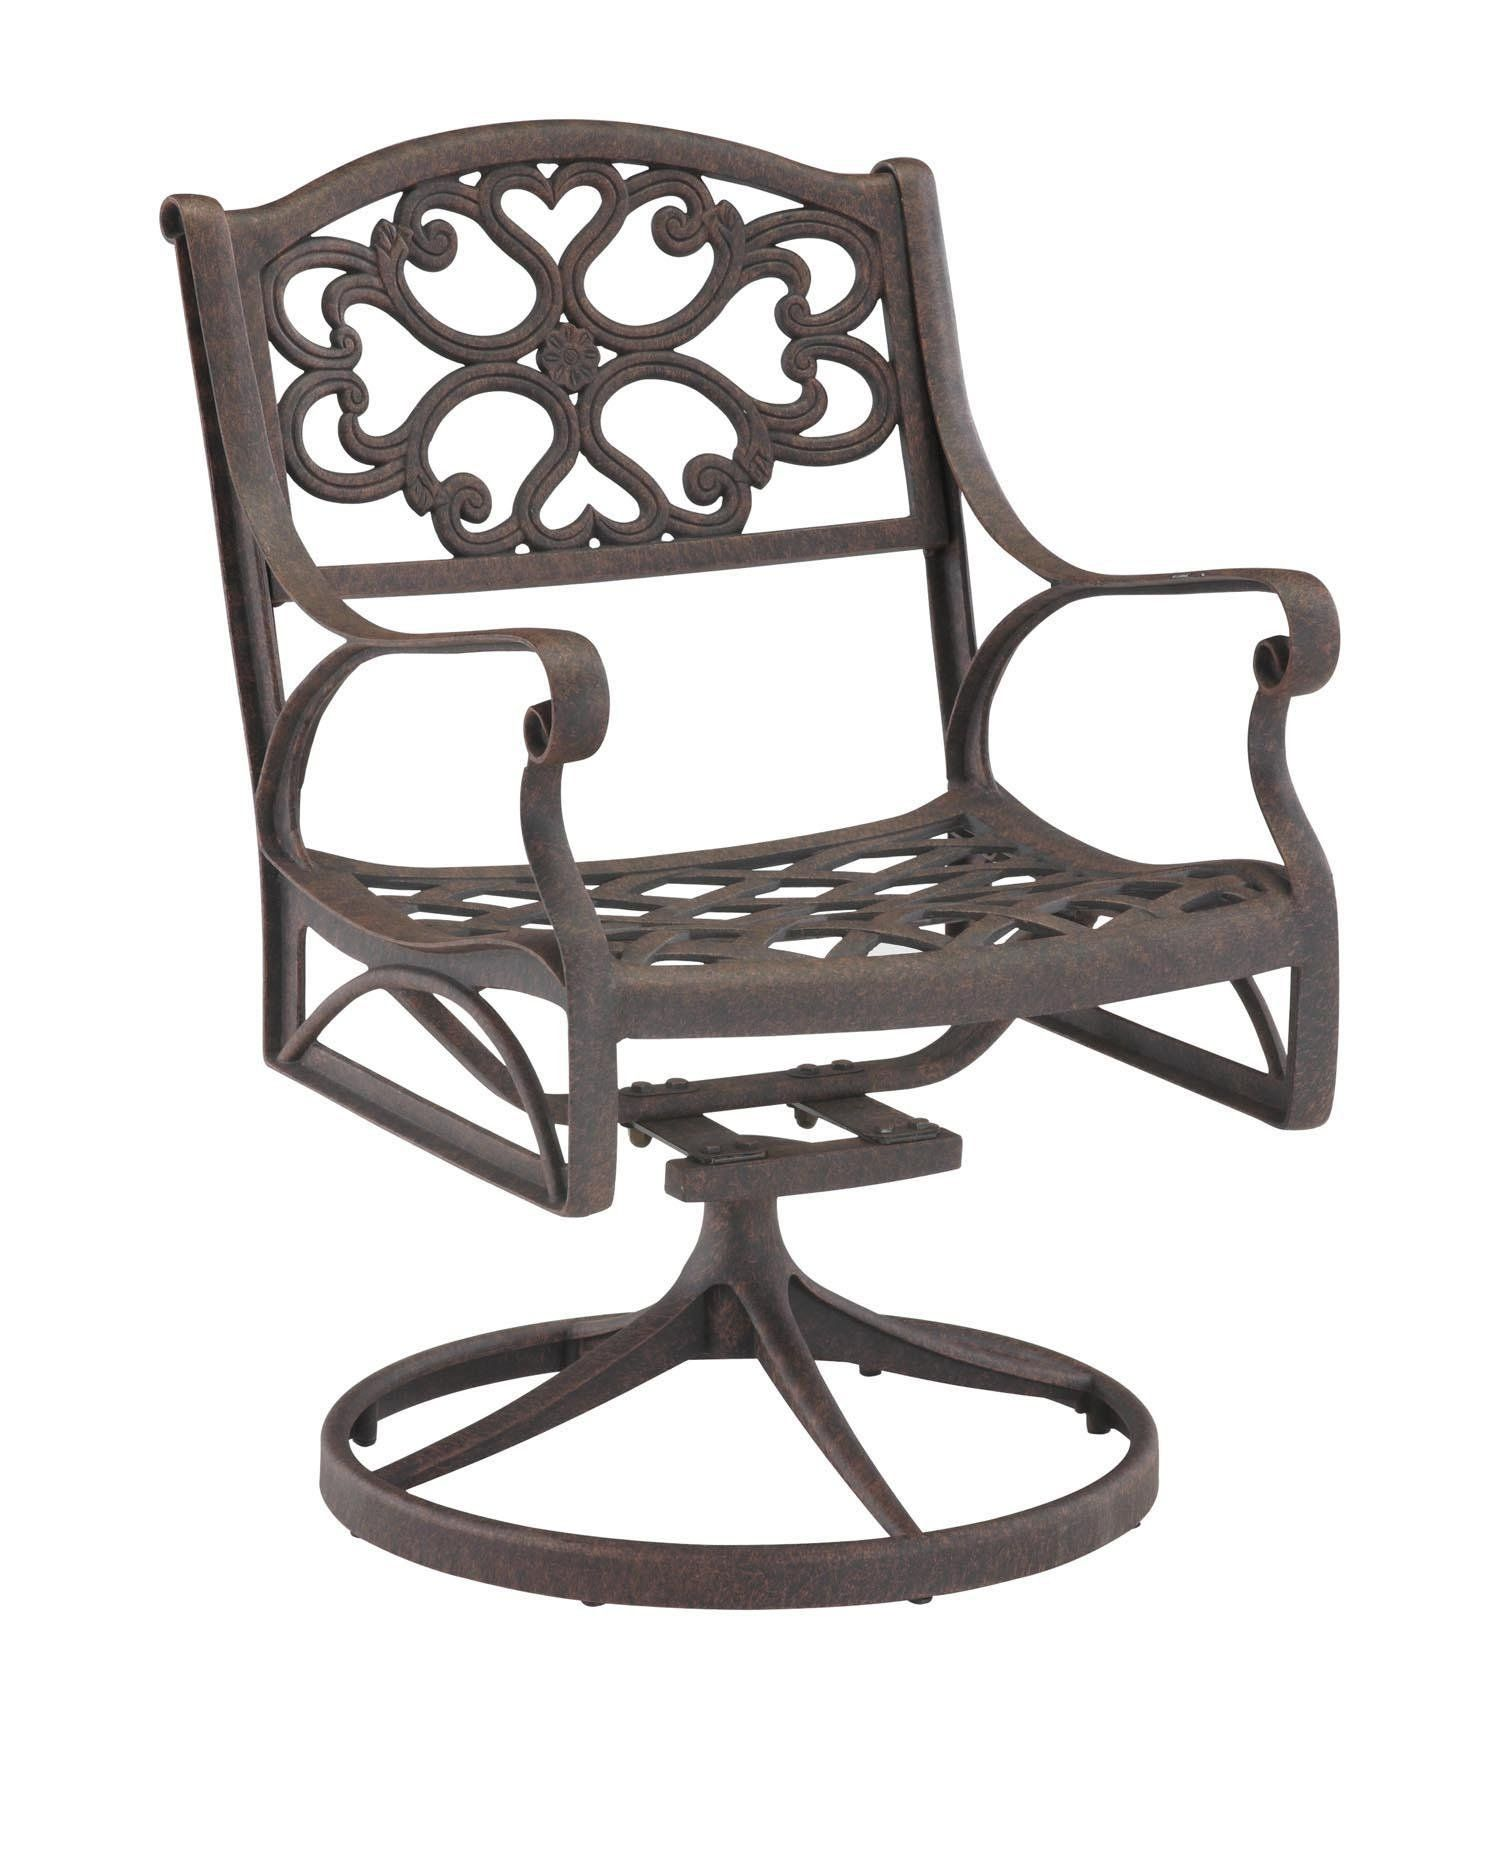 Home Styles Biscayne Bronze Rocking/Swivel Outdoor Arm